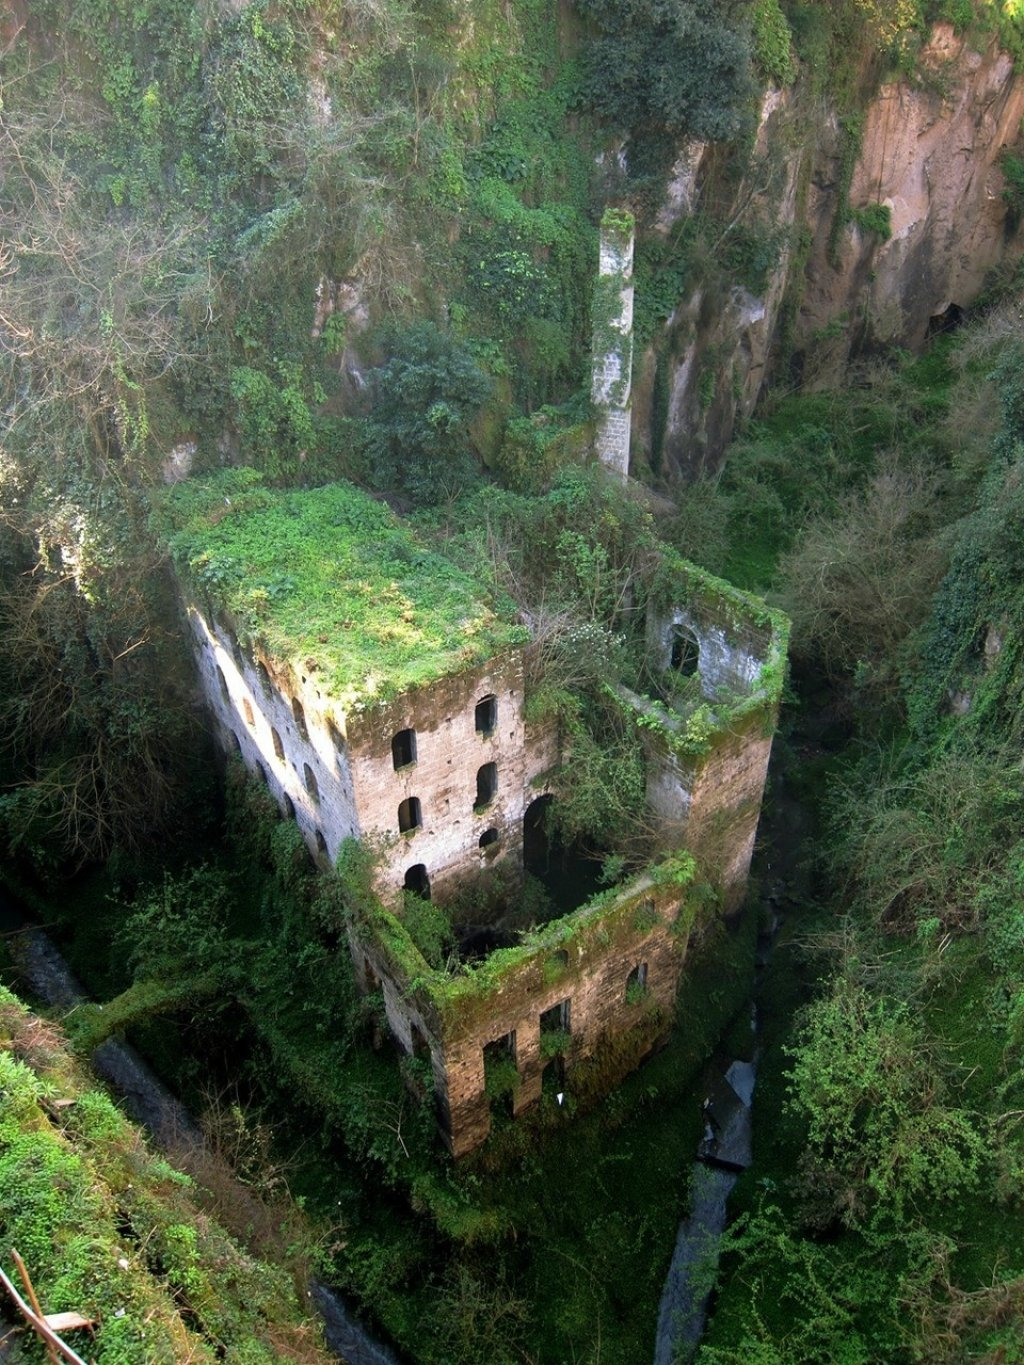 Incredible abandoned places around the world Part 1